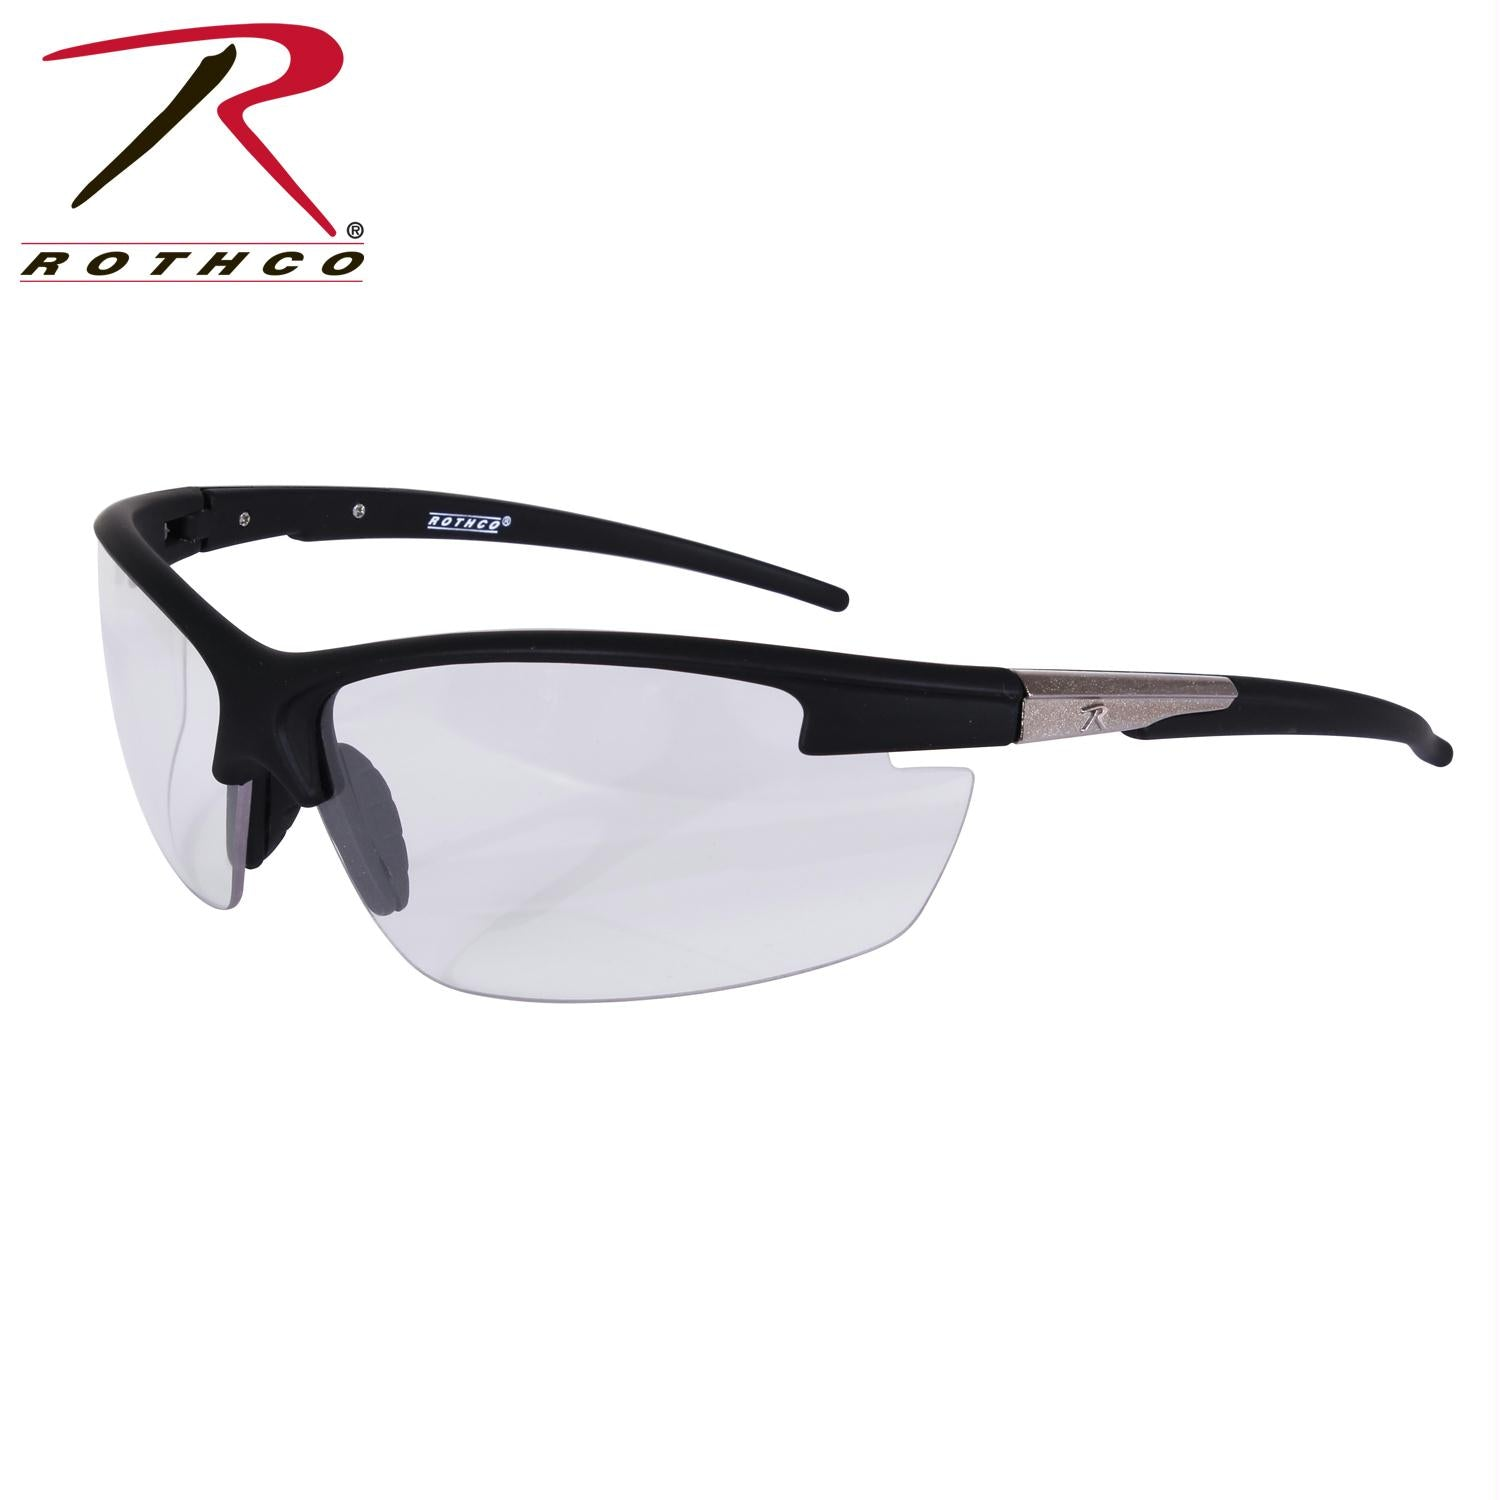 Rothco AR-7 Sport Glasses - Black / Clear